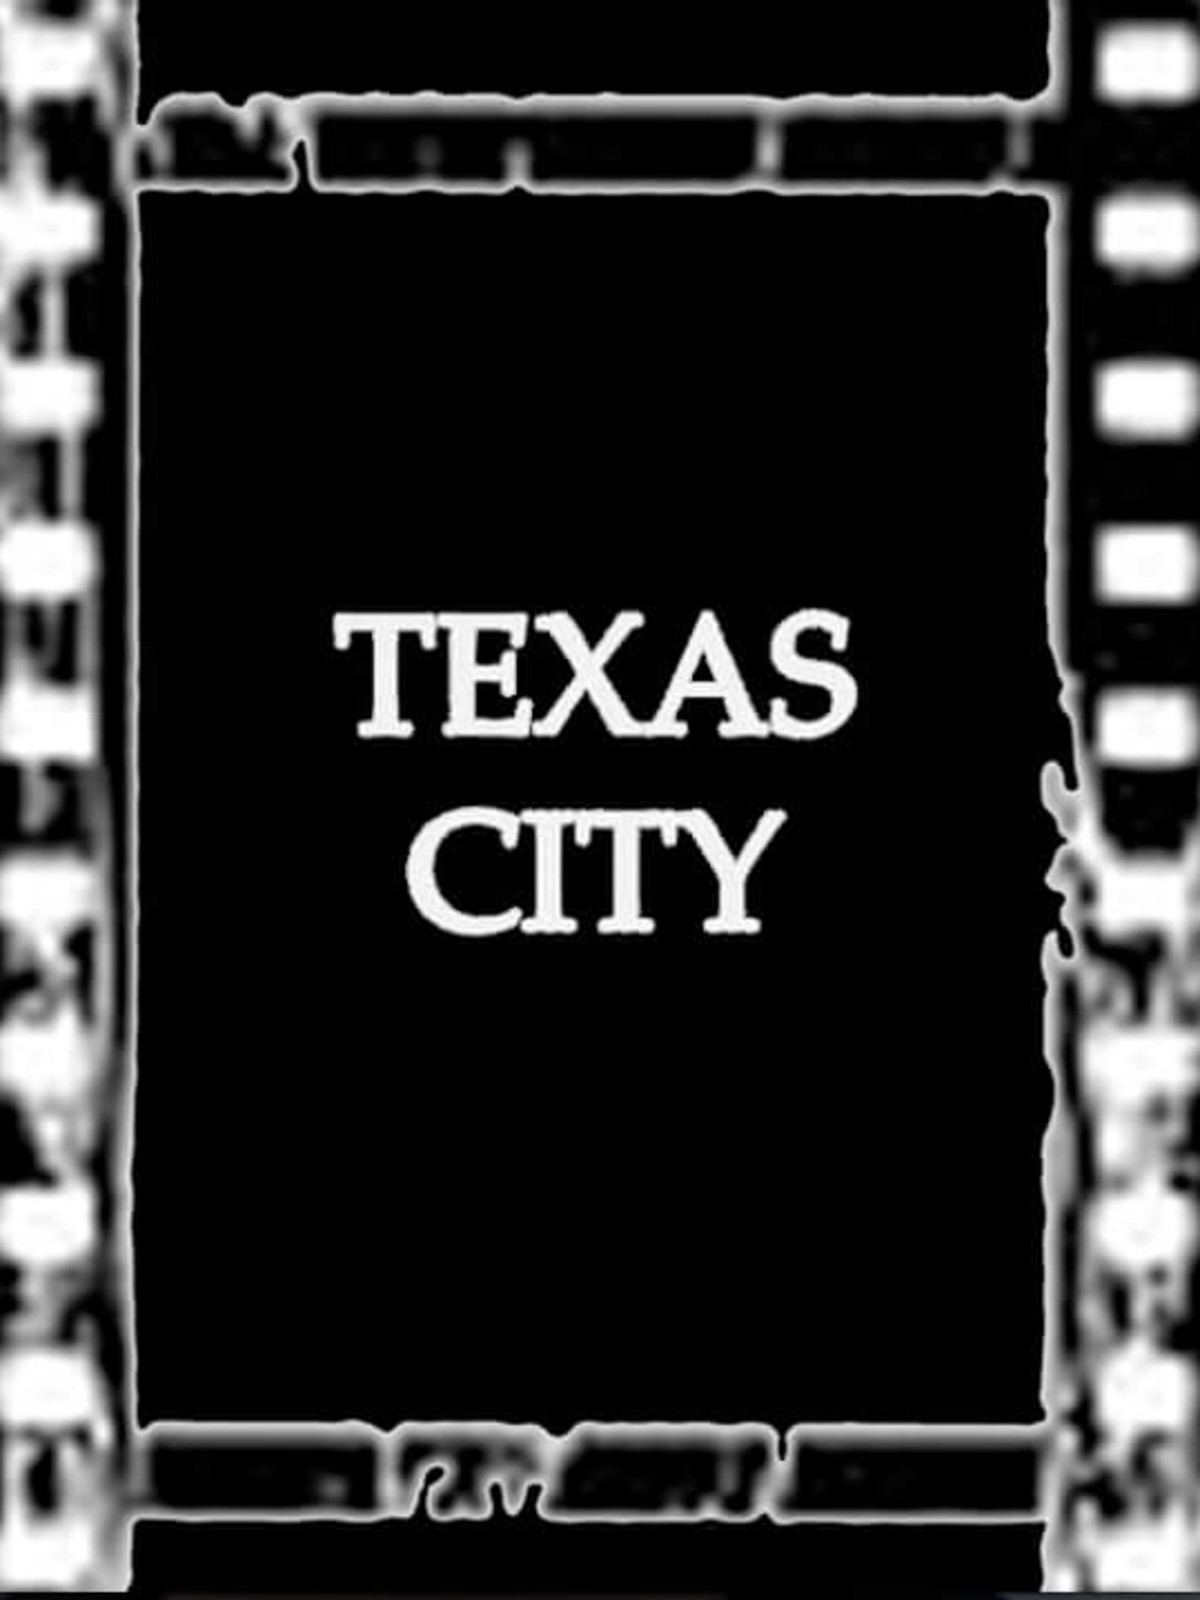 Texas City movie